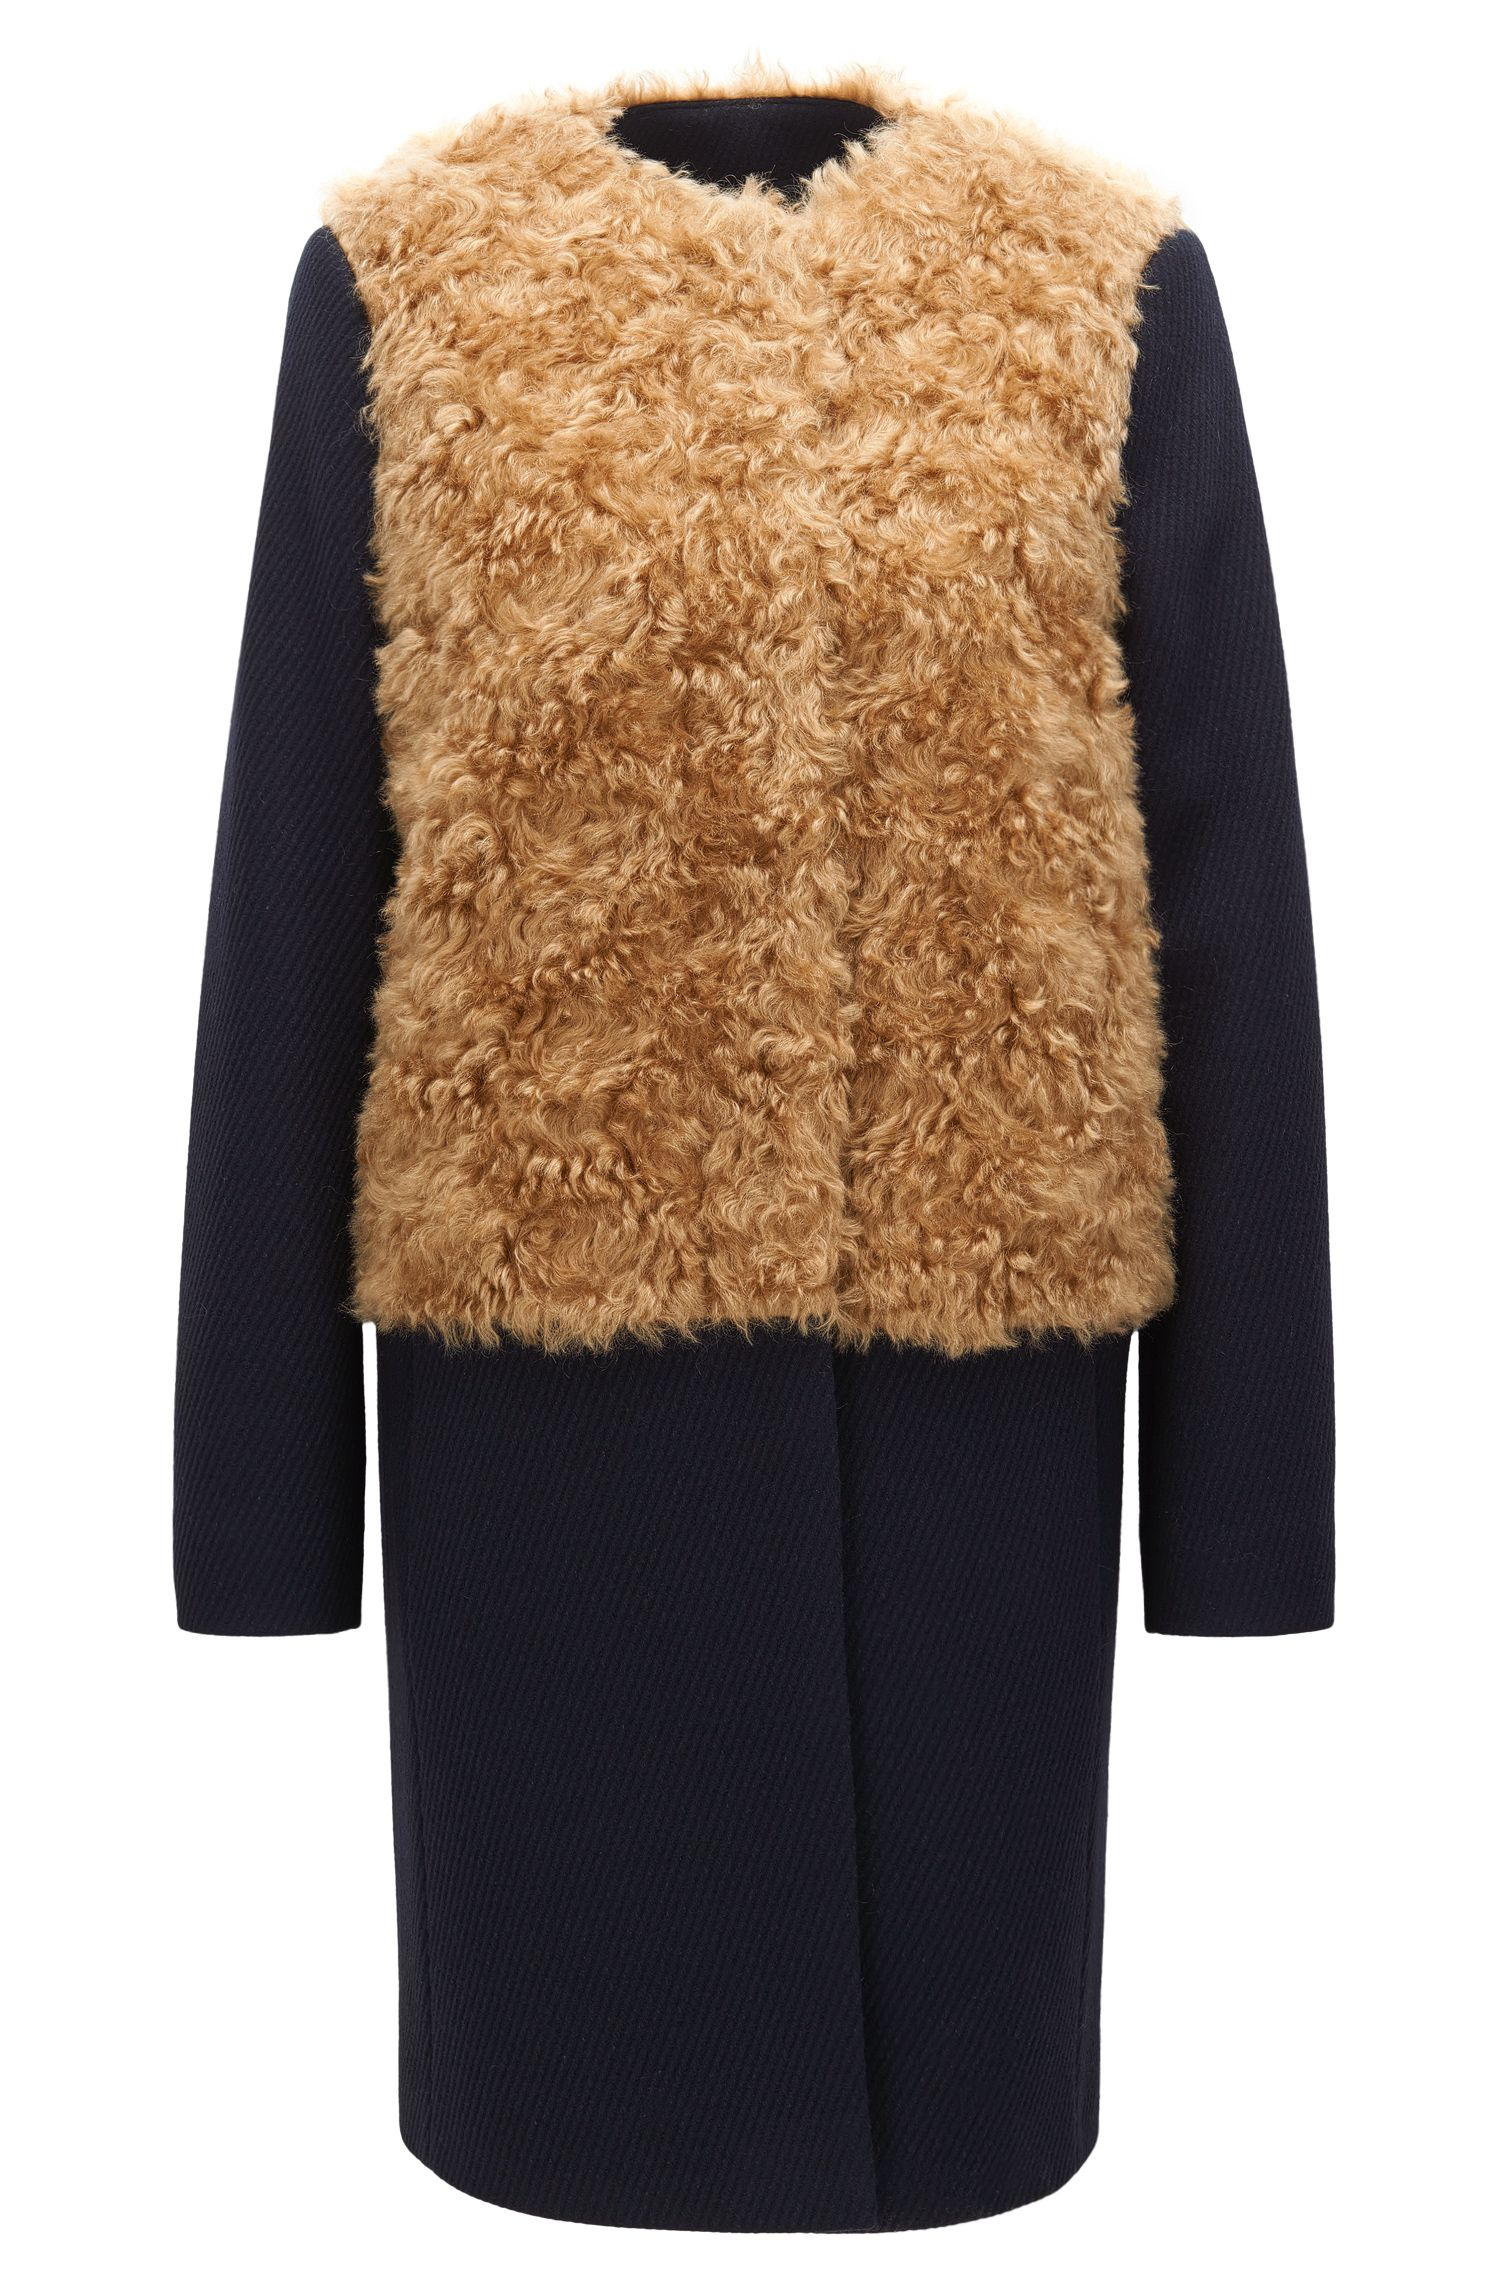 Statement relaxed-fit coat in a wool mix